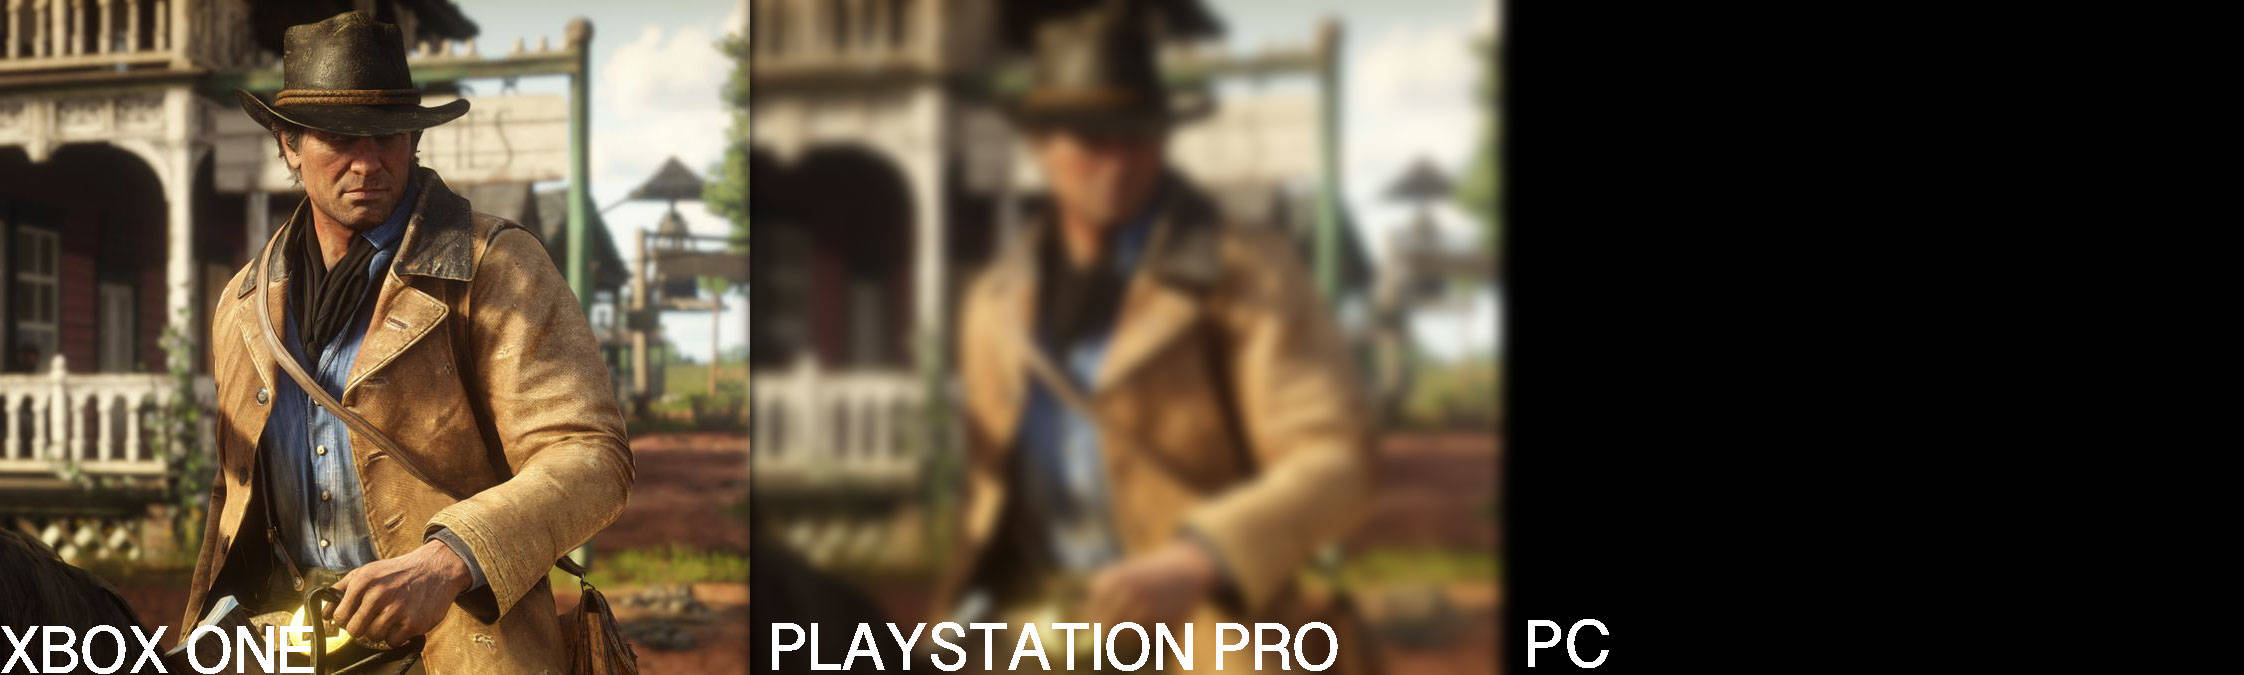 Rdr2 graphics blurry PS4 Pro - Page 11 - Red Dead Redemption 2